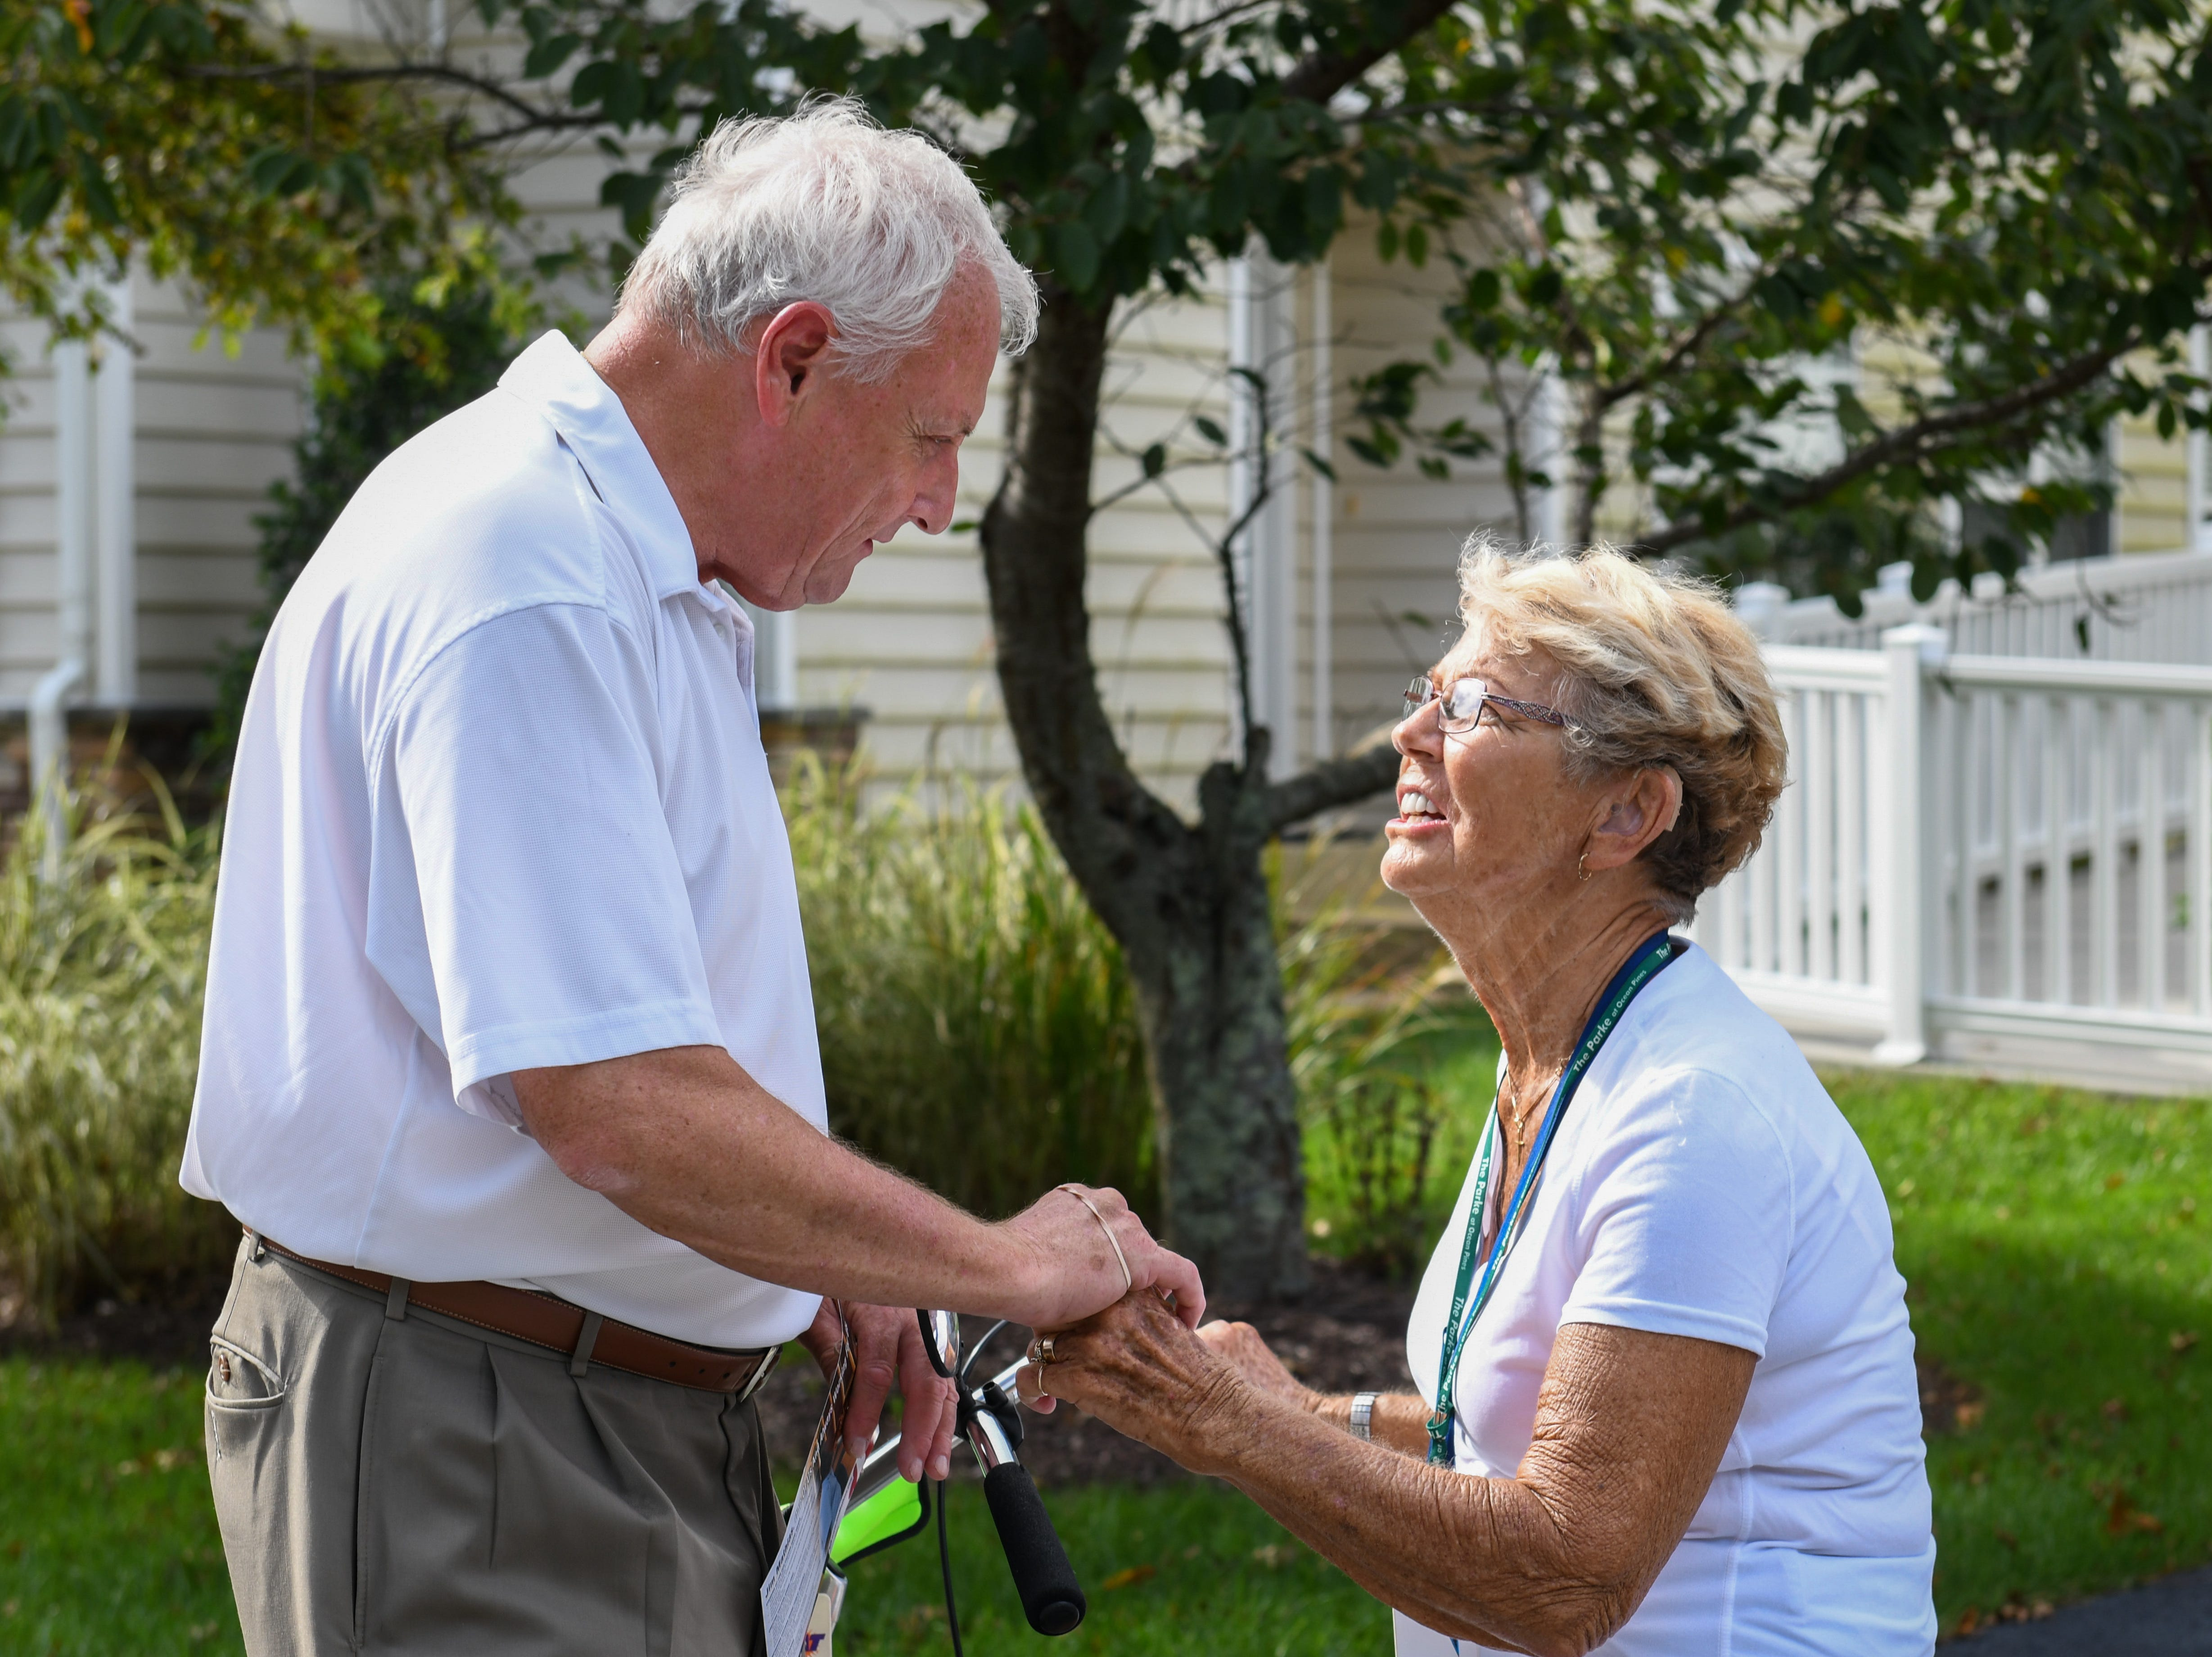 Sen. Jim Mathias, Democratic incumbent candidate for Maryland State Senate in District 38, talks to voter Hatty Ketterman in Ocean Pines while campaigning door to door on Tuesday, Oct 2, 2018.